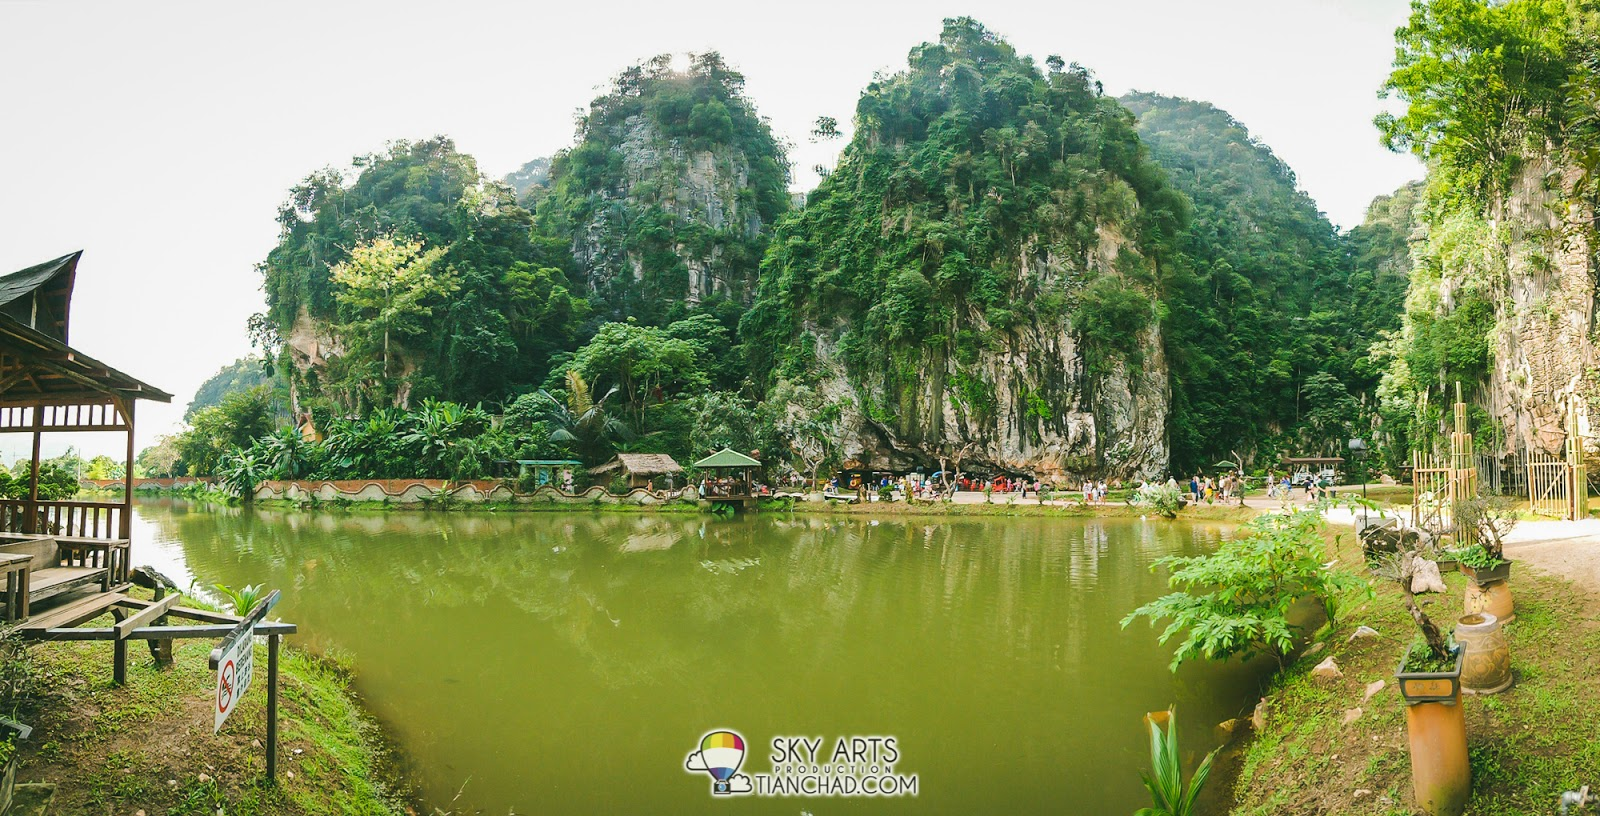 The beautiful scenery that you can see once you enter Qing Xin Ling